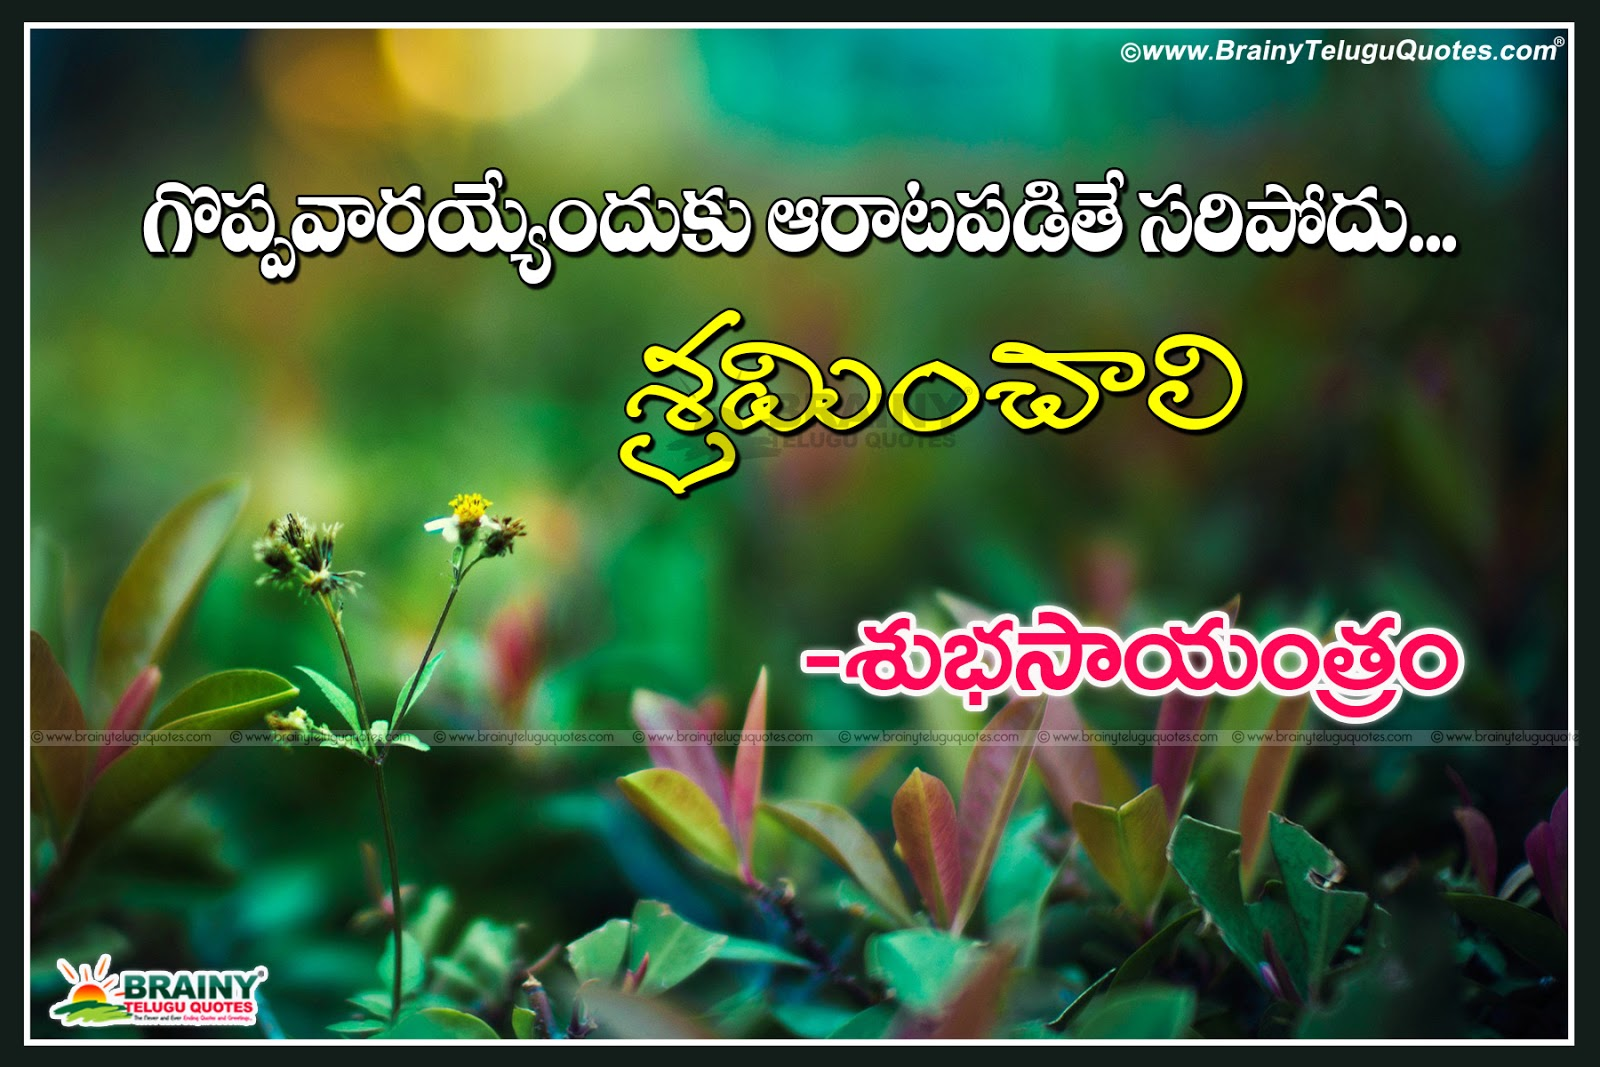 Here Is Latest Good Evening Telugu Quotations Wallpapers Quotes Nice Inspirational